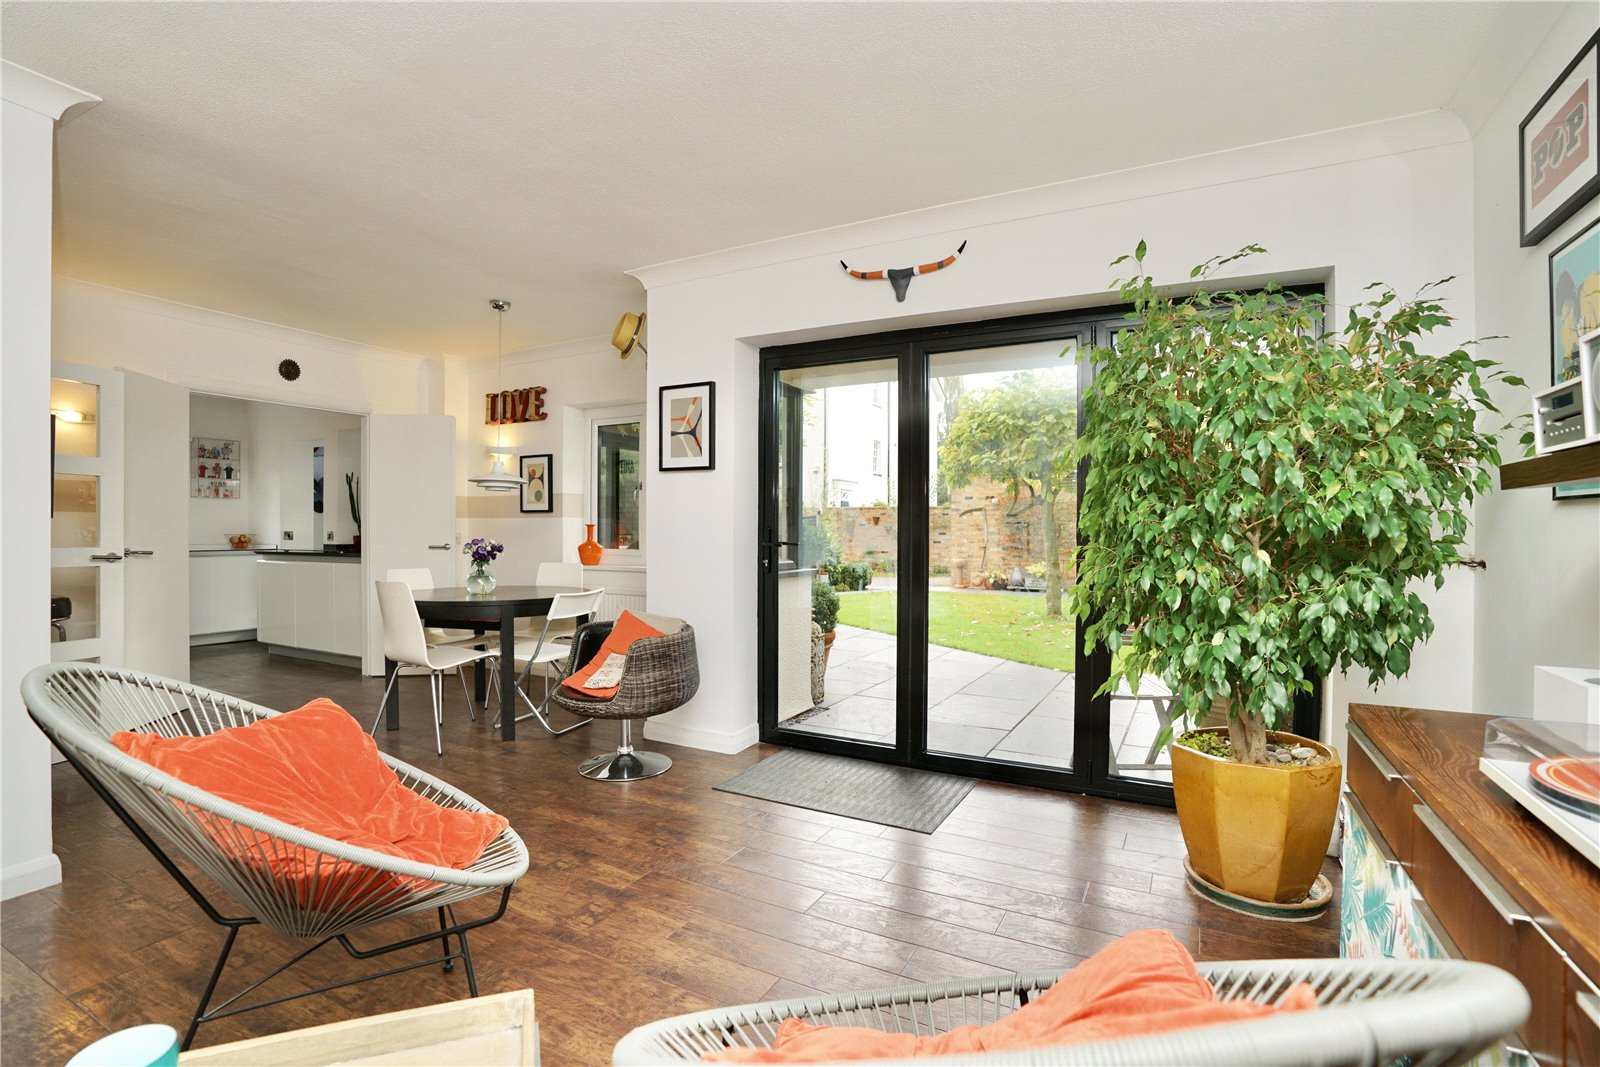 4 bed house for sale in Eaton Socon 0